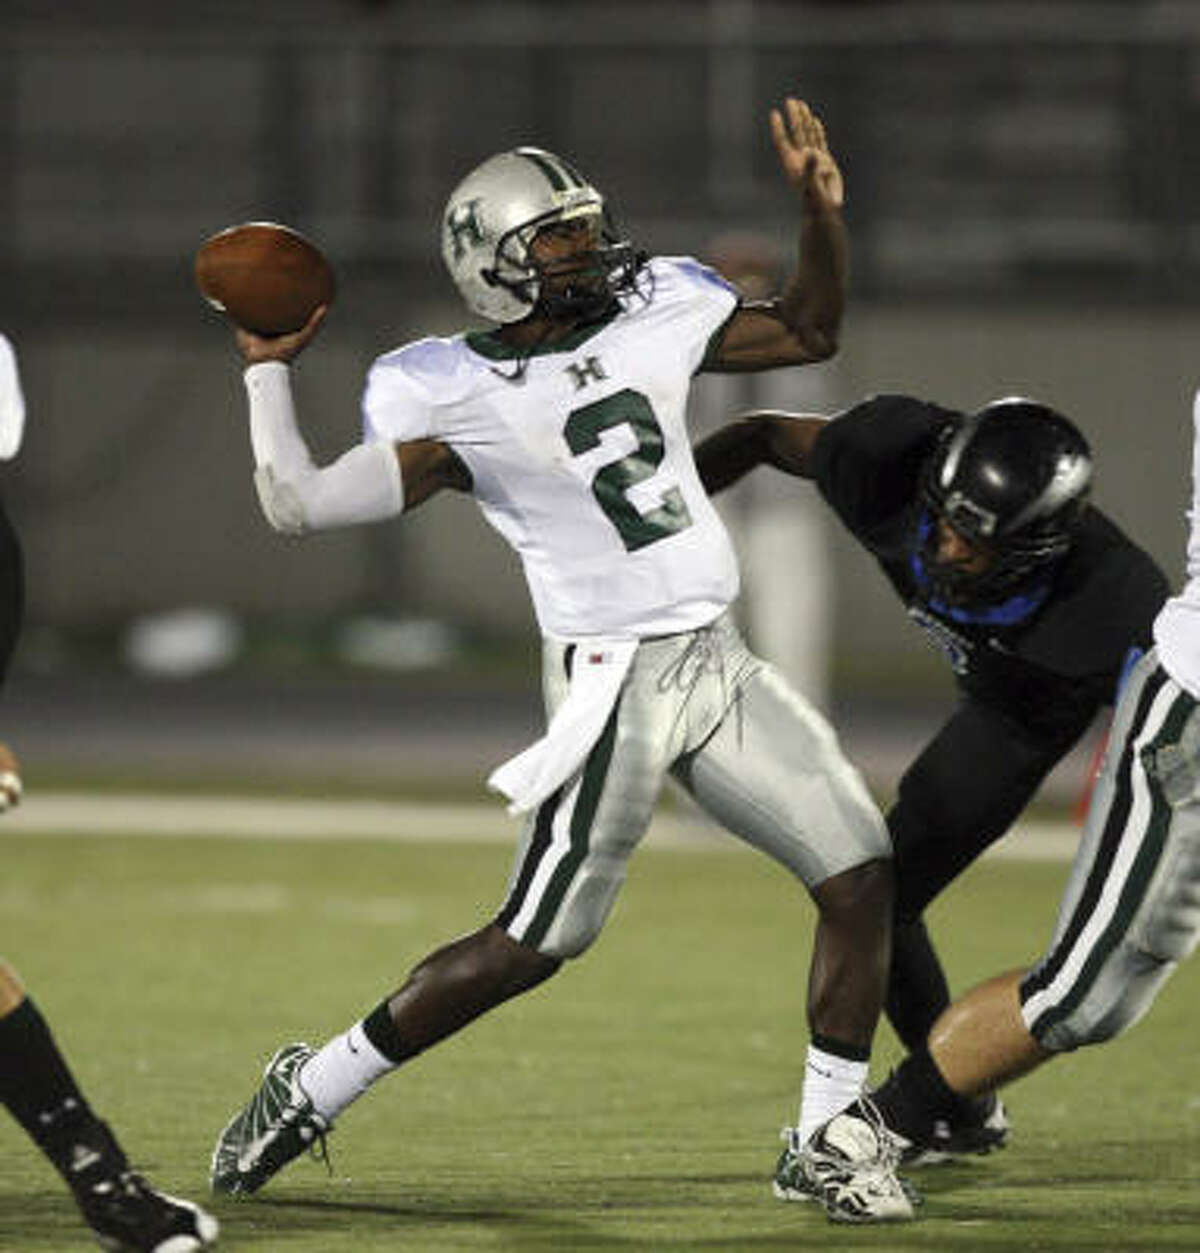 Hightower quarterback Bralon Addison throws the ball down field during the victory over Clear Springs on Friday night.